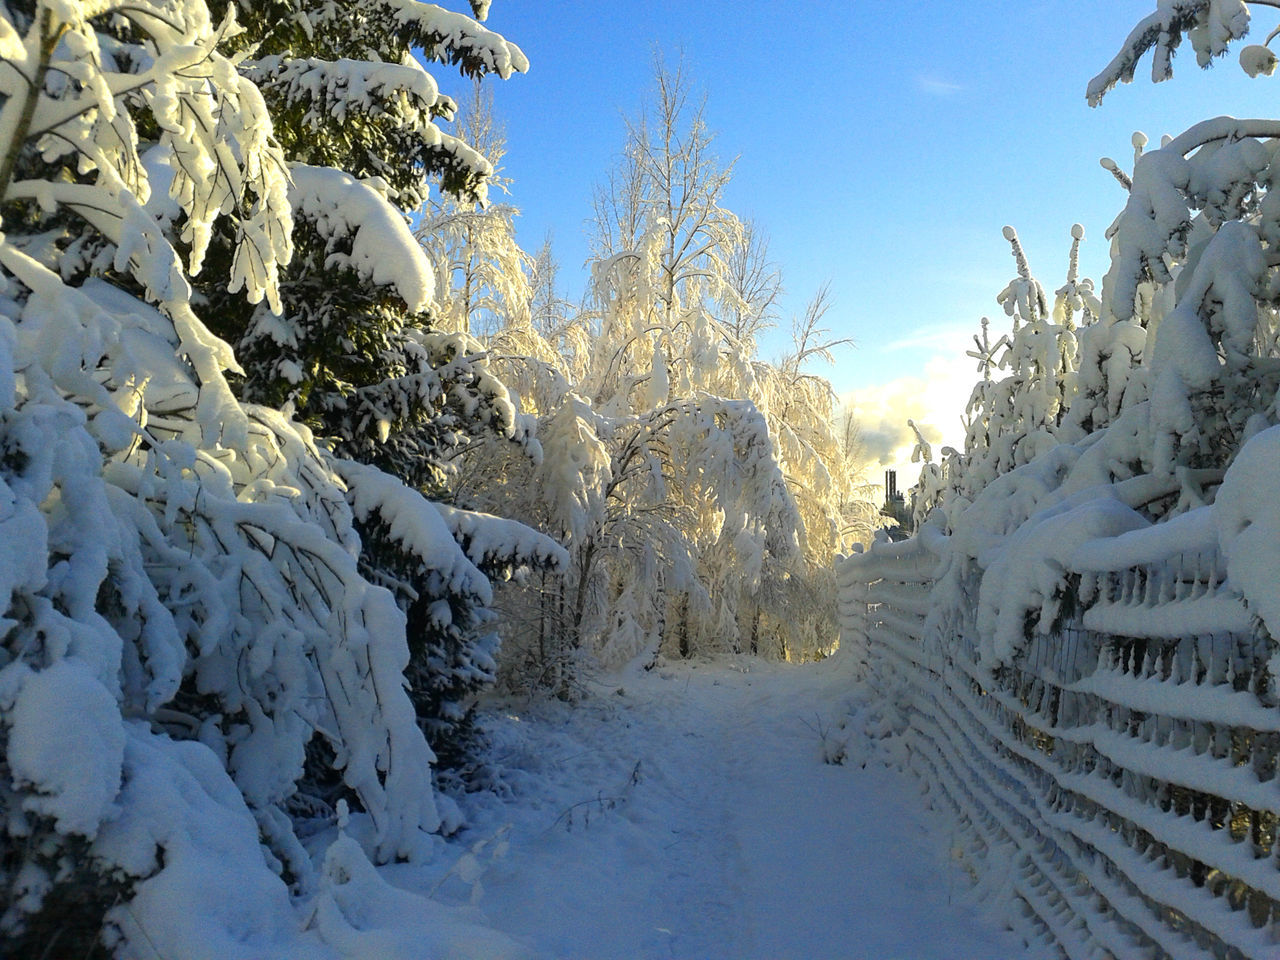 Snow Covered Footpath By Trees